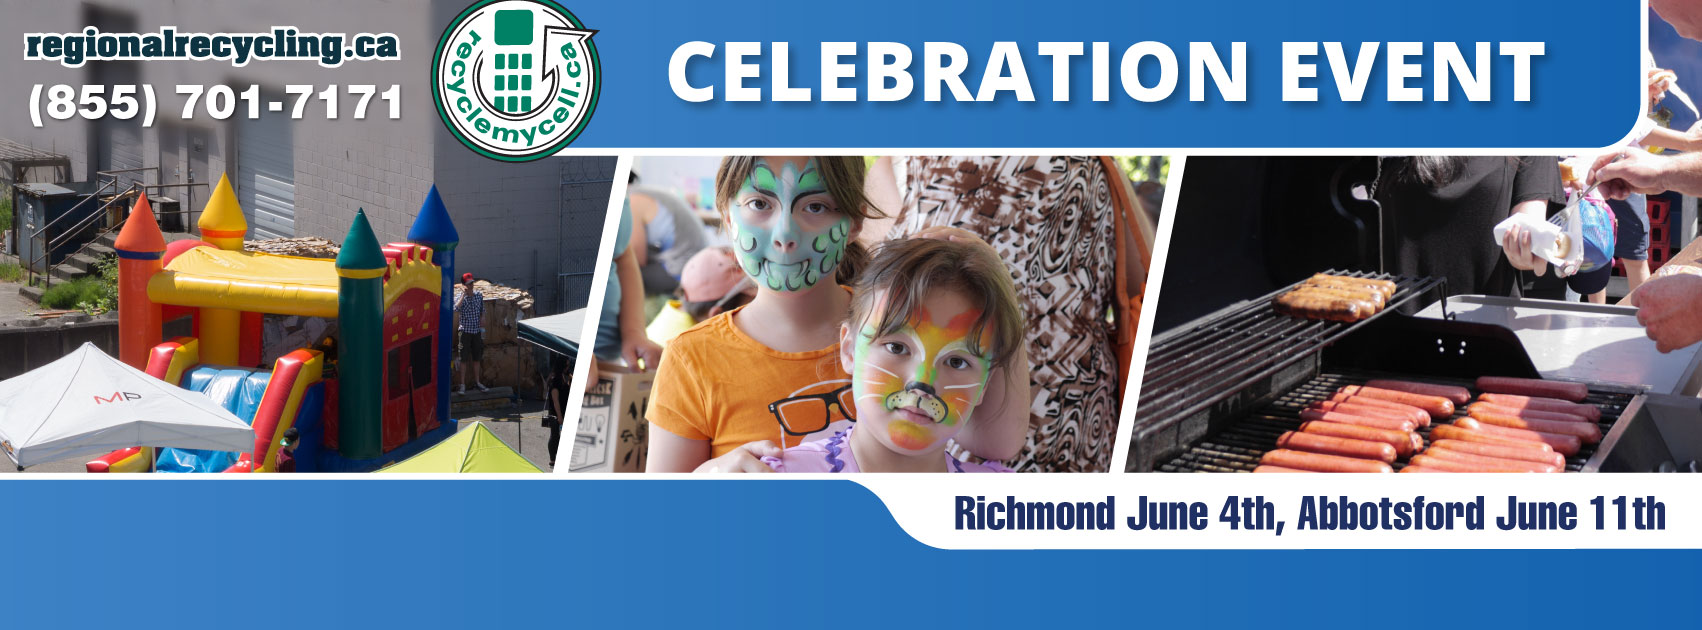 Environment Week Celebrations | Regional Recycling Richmond